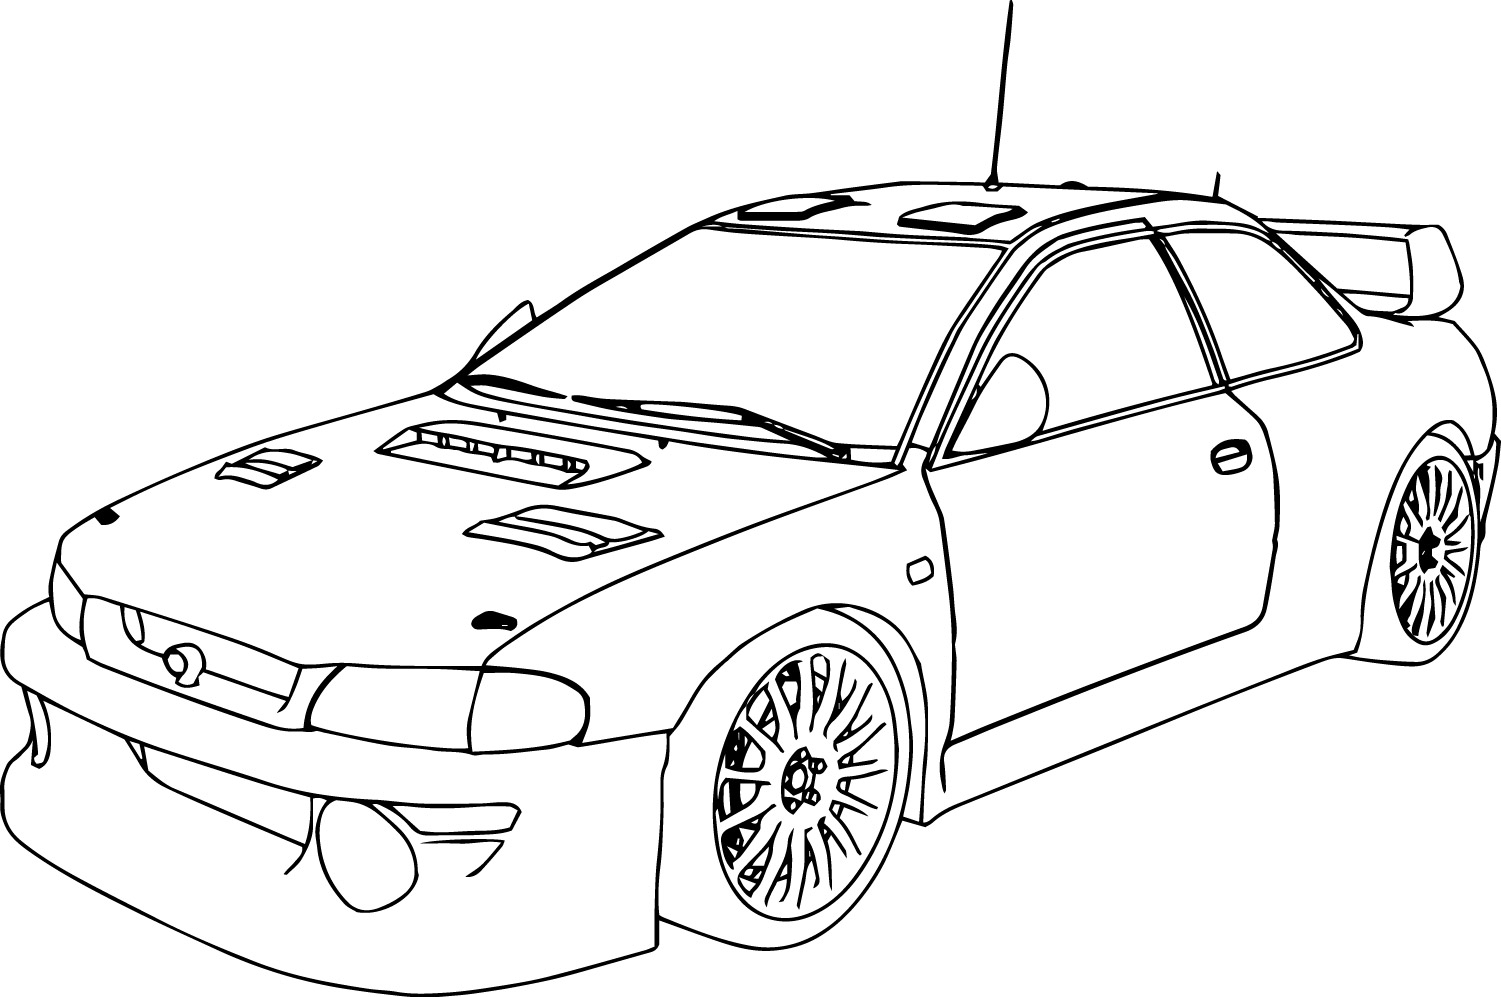 bmw race car coloring pages race cars coloring page free printable coloring pages race bmw pages coloring car